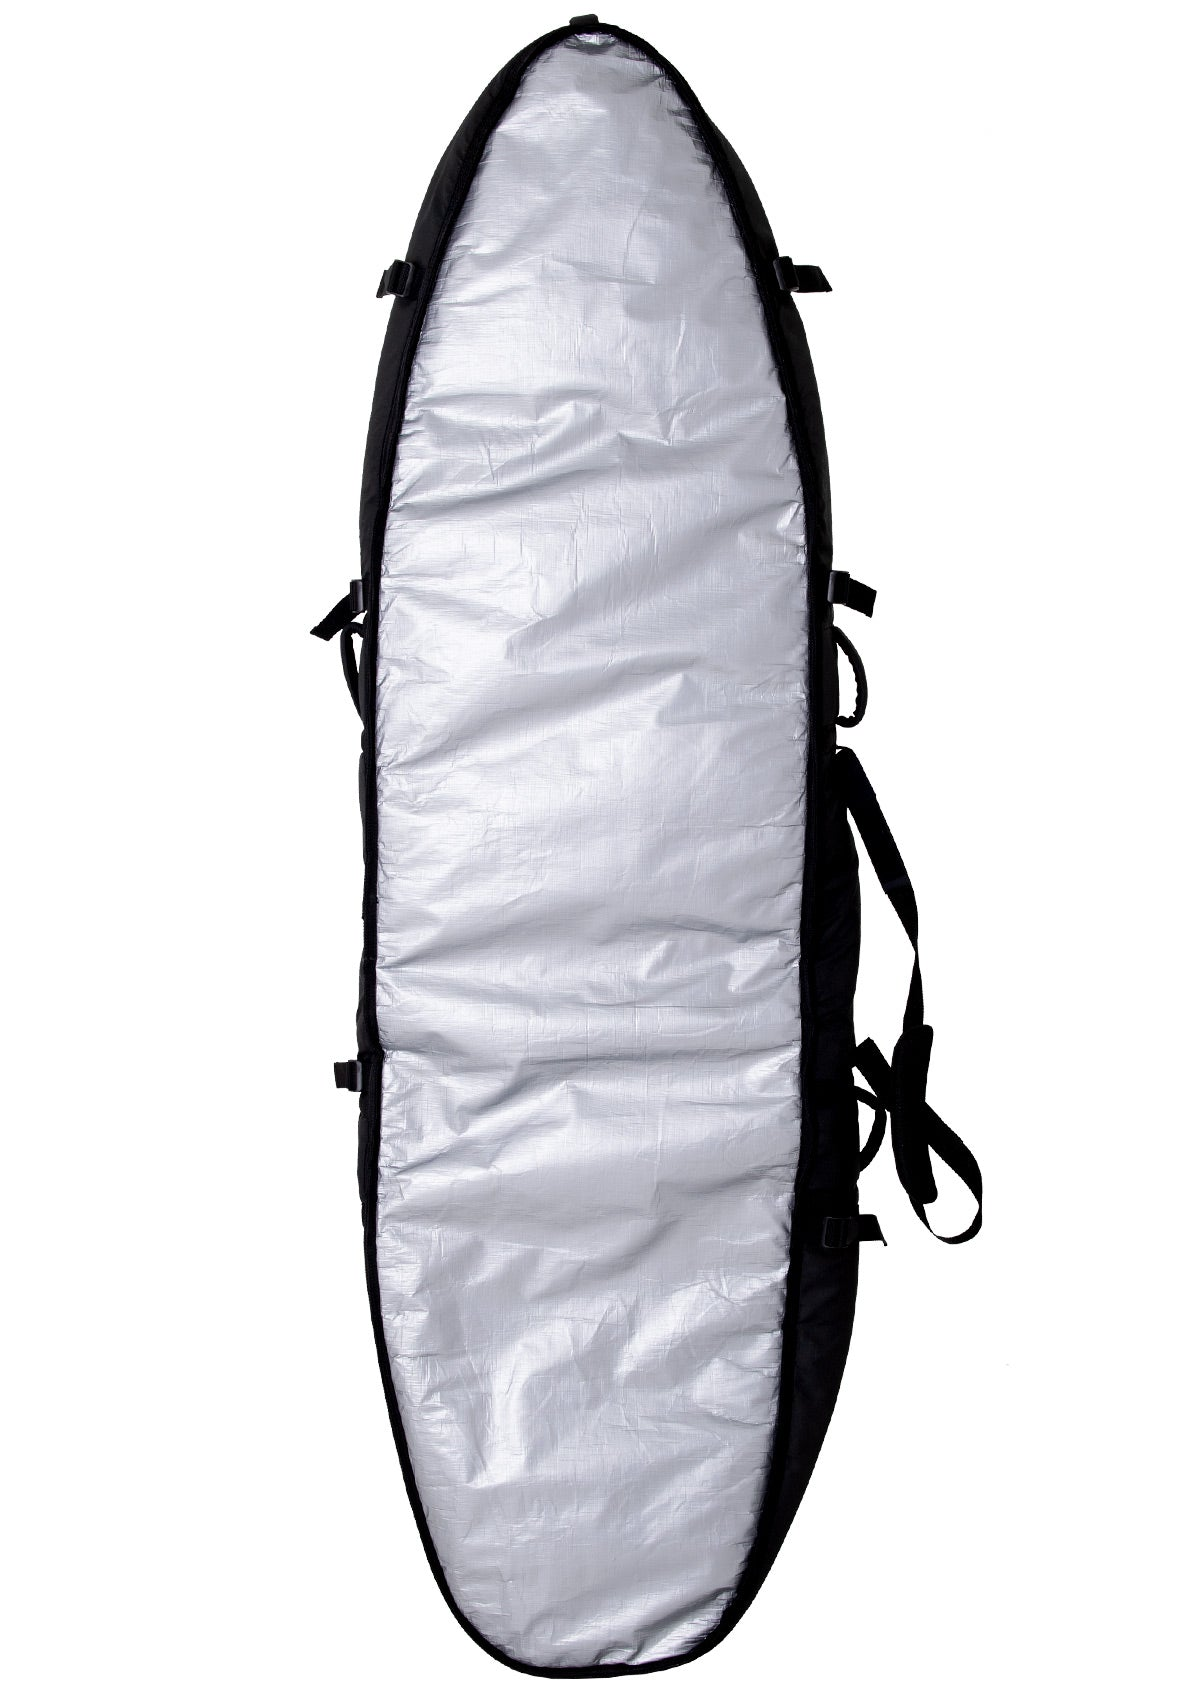 needessentials travel double boardbag surfing non branded